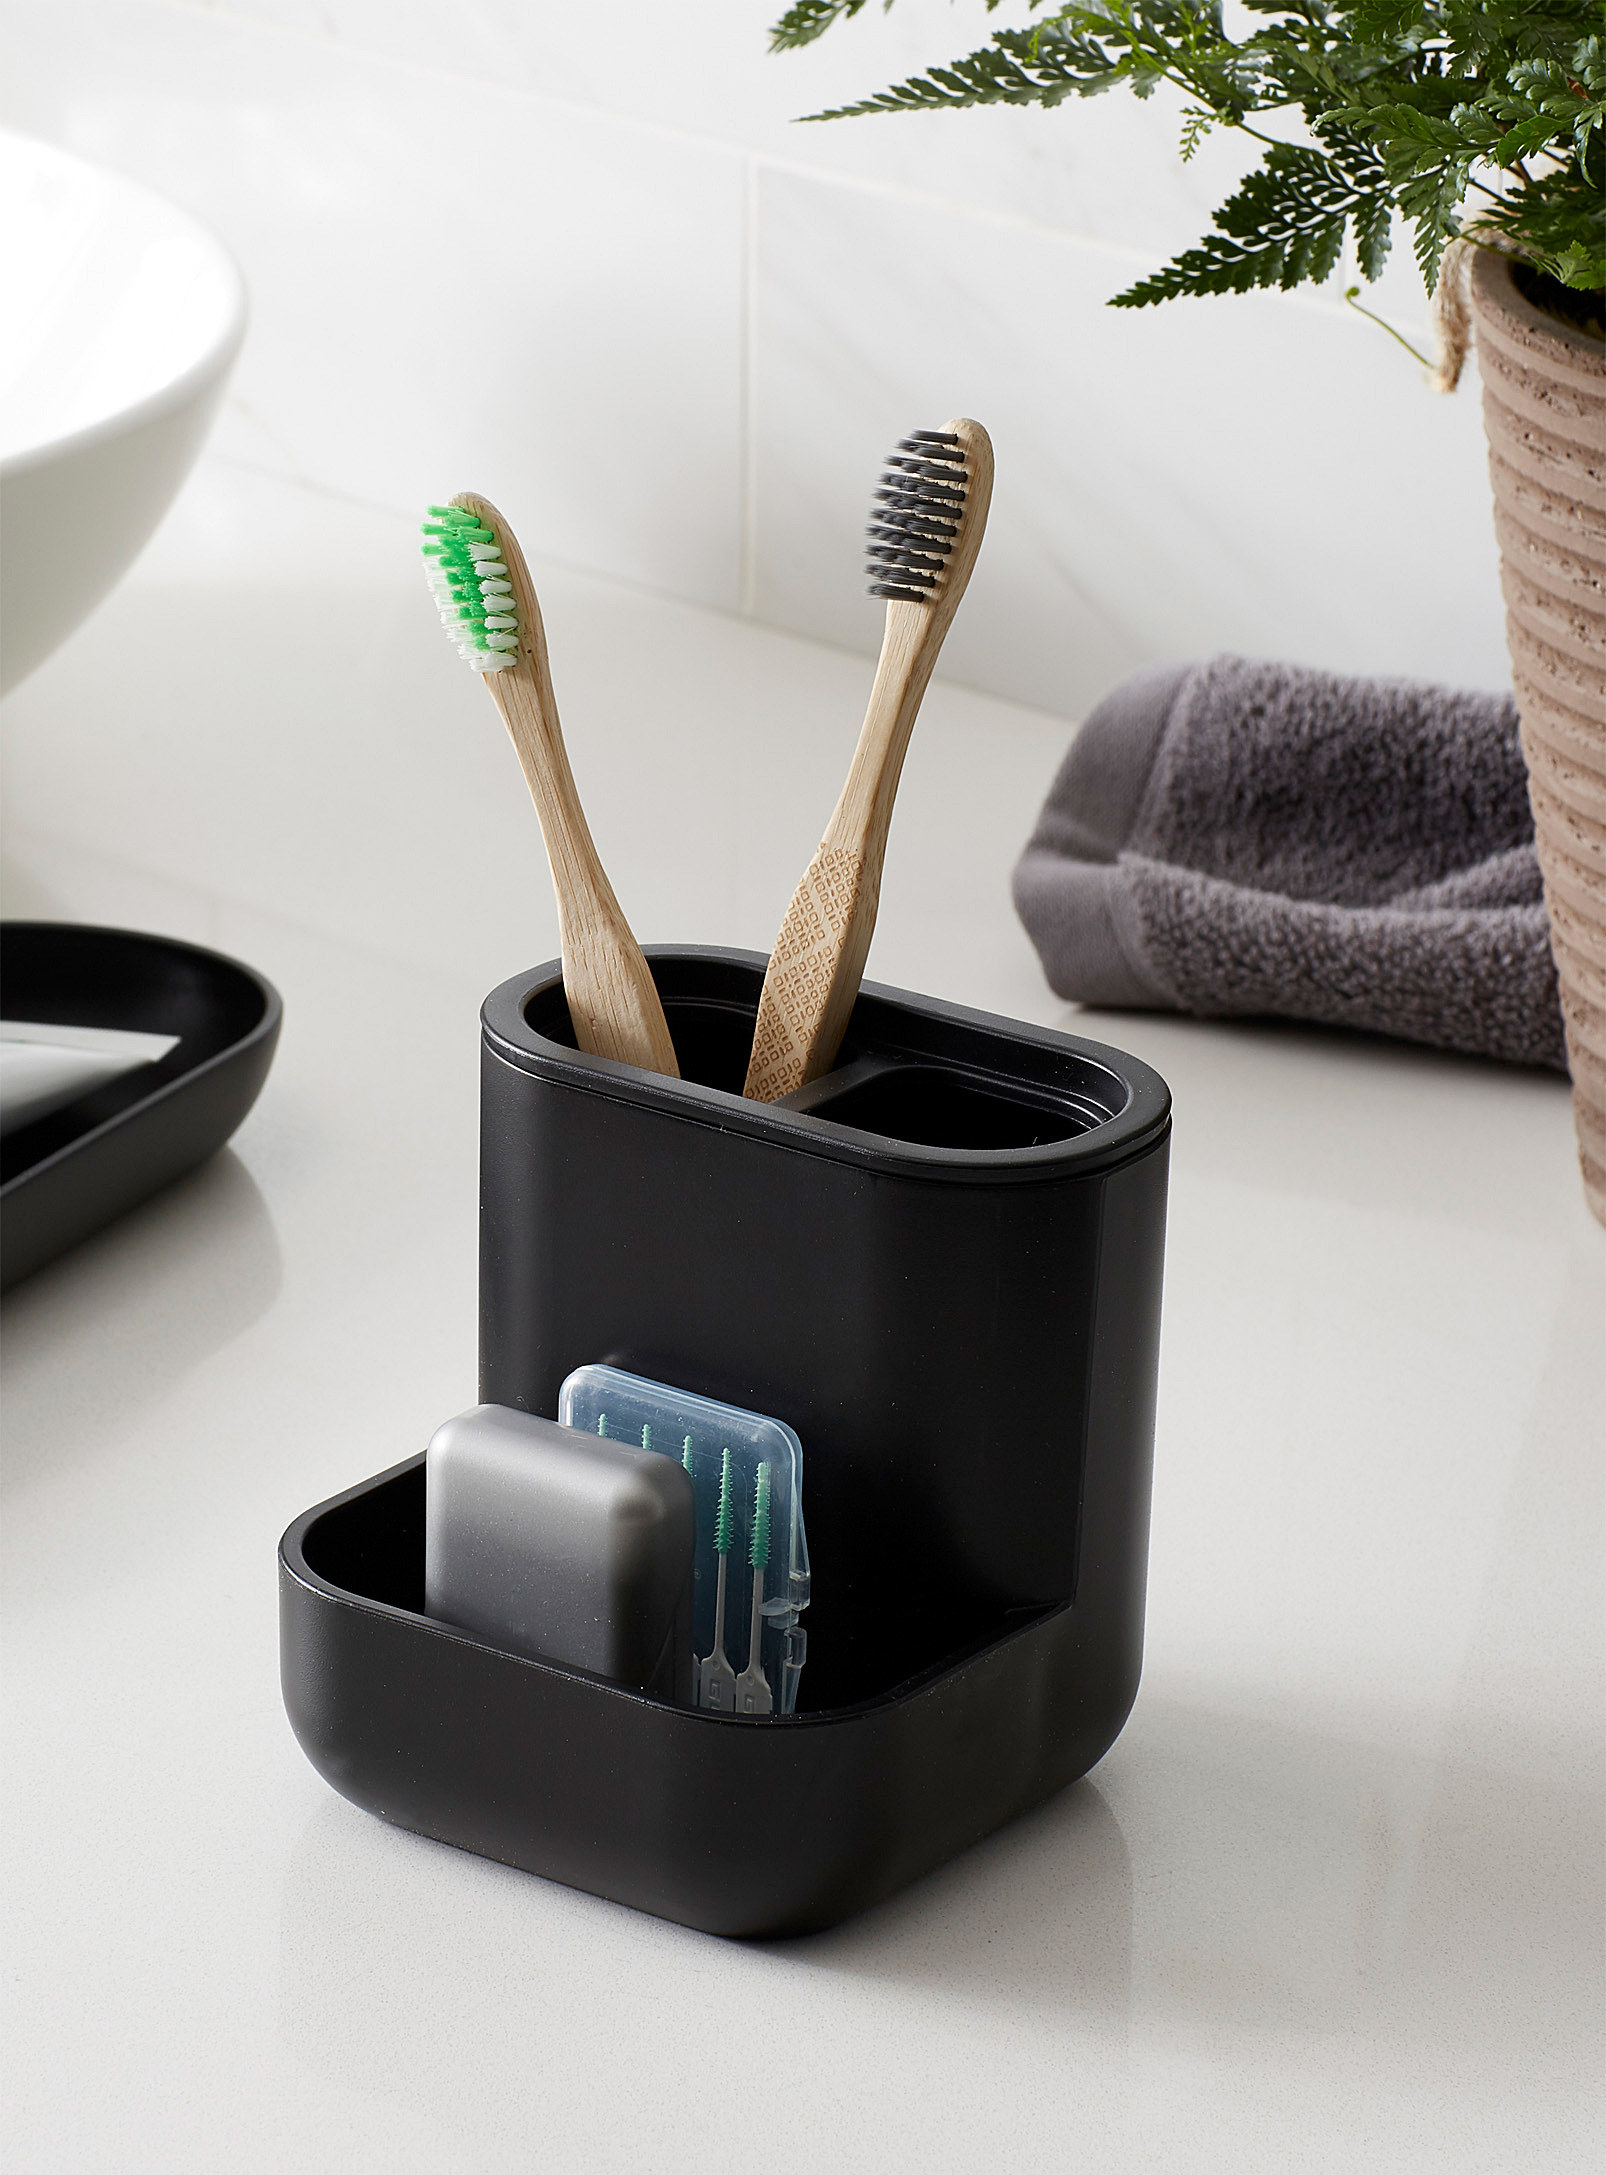 A plastic toothbrush holder with two toothbrushes in it